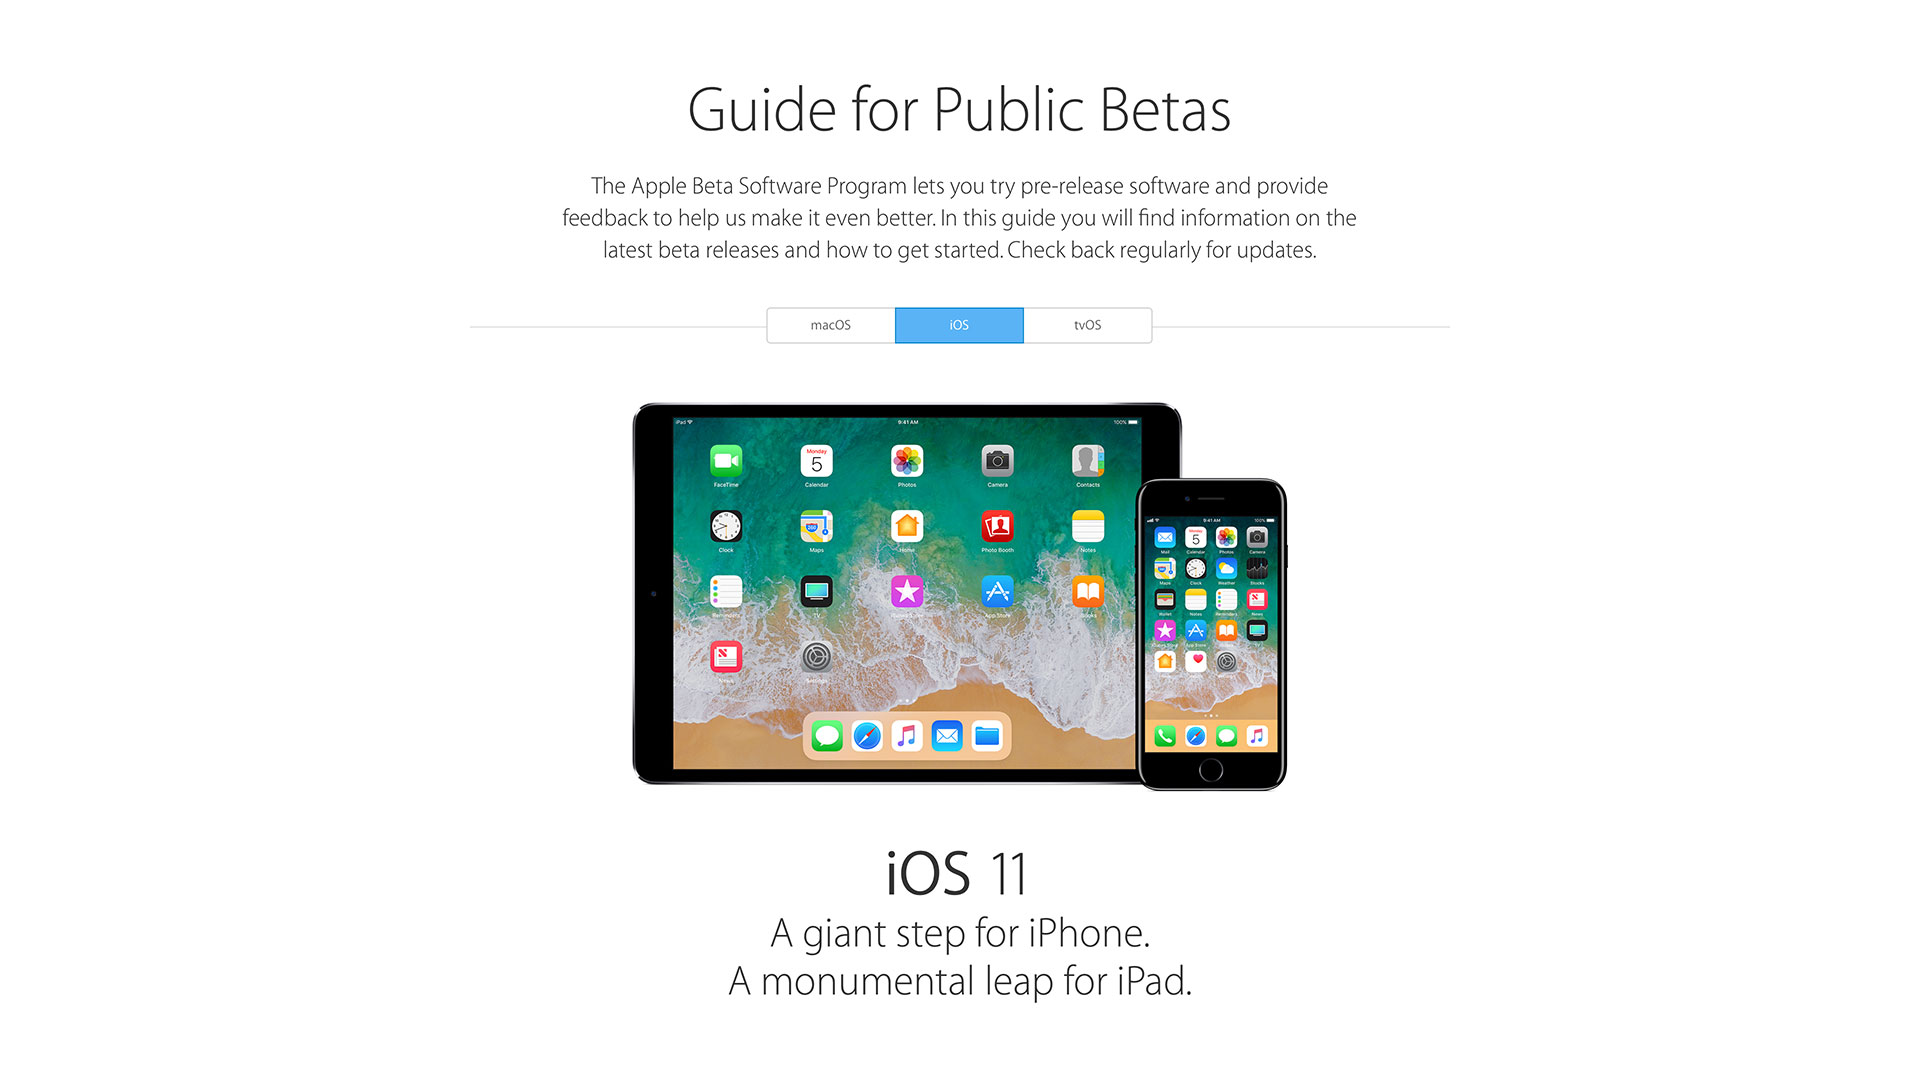 Apple-Guide-for-Public-Betas-iOS11